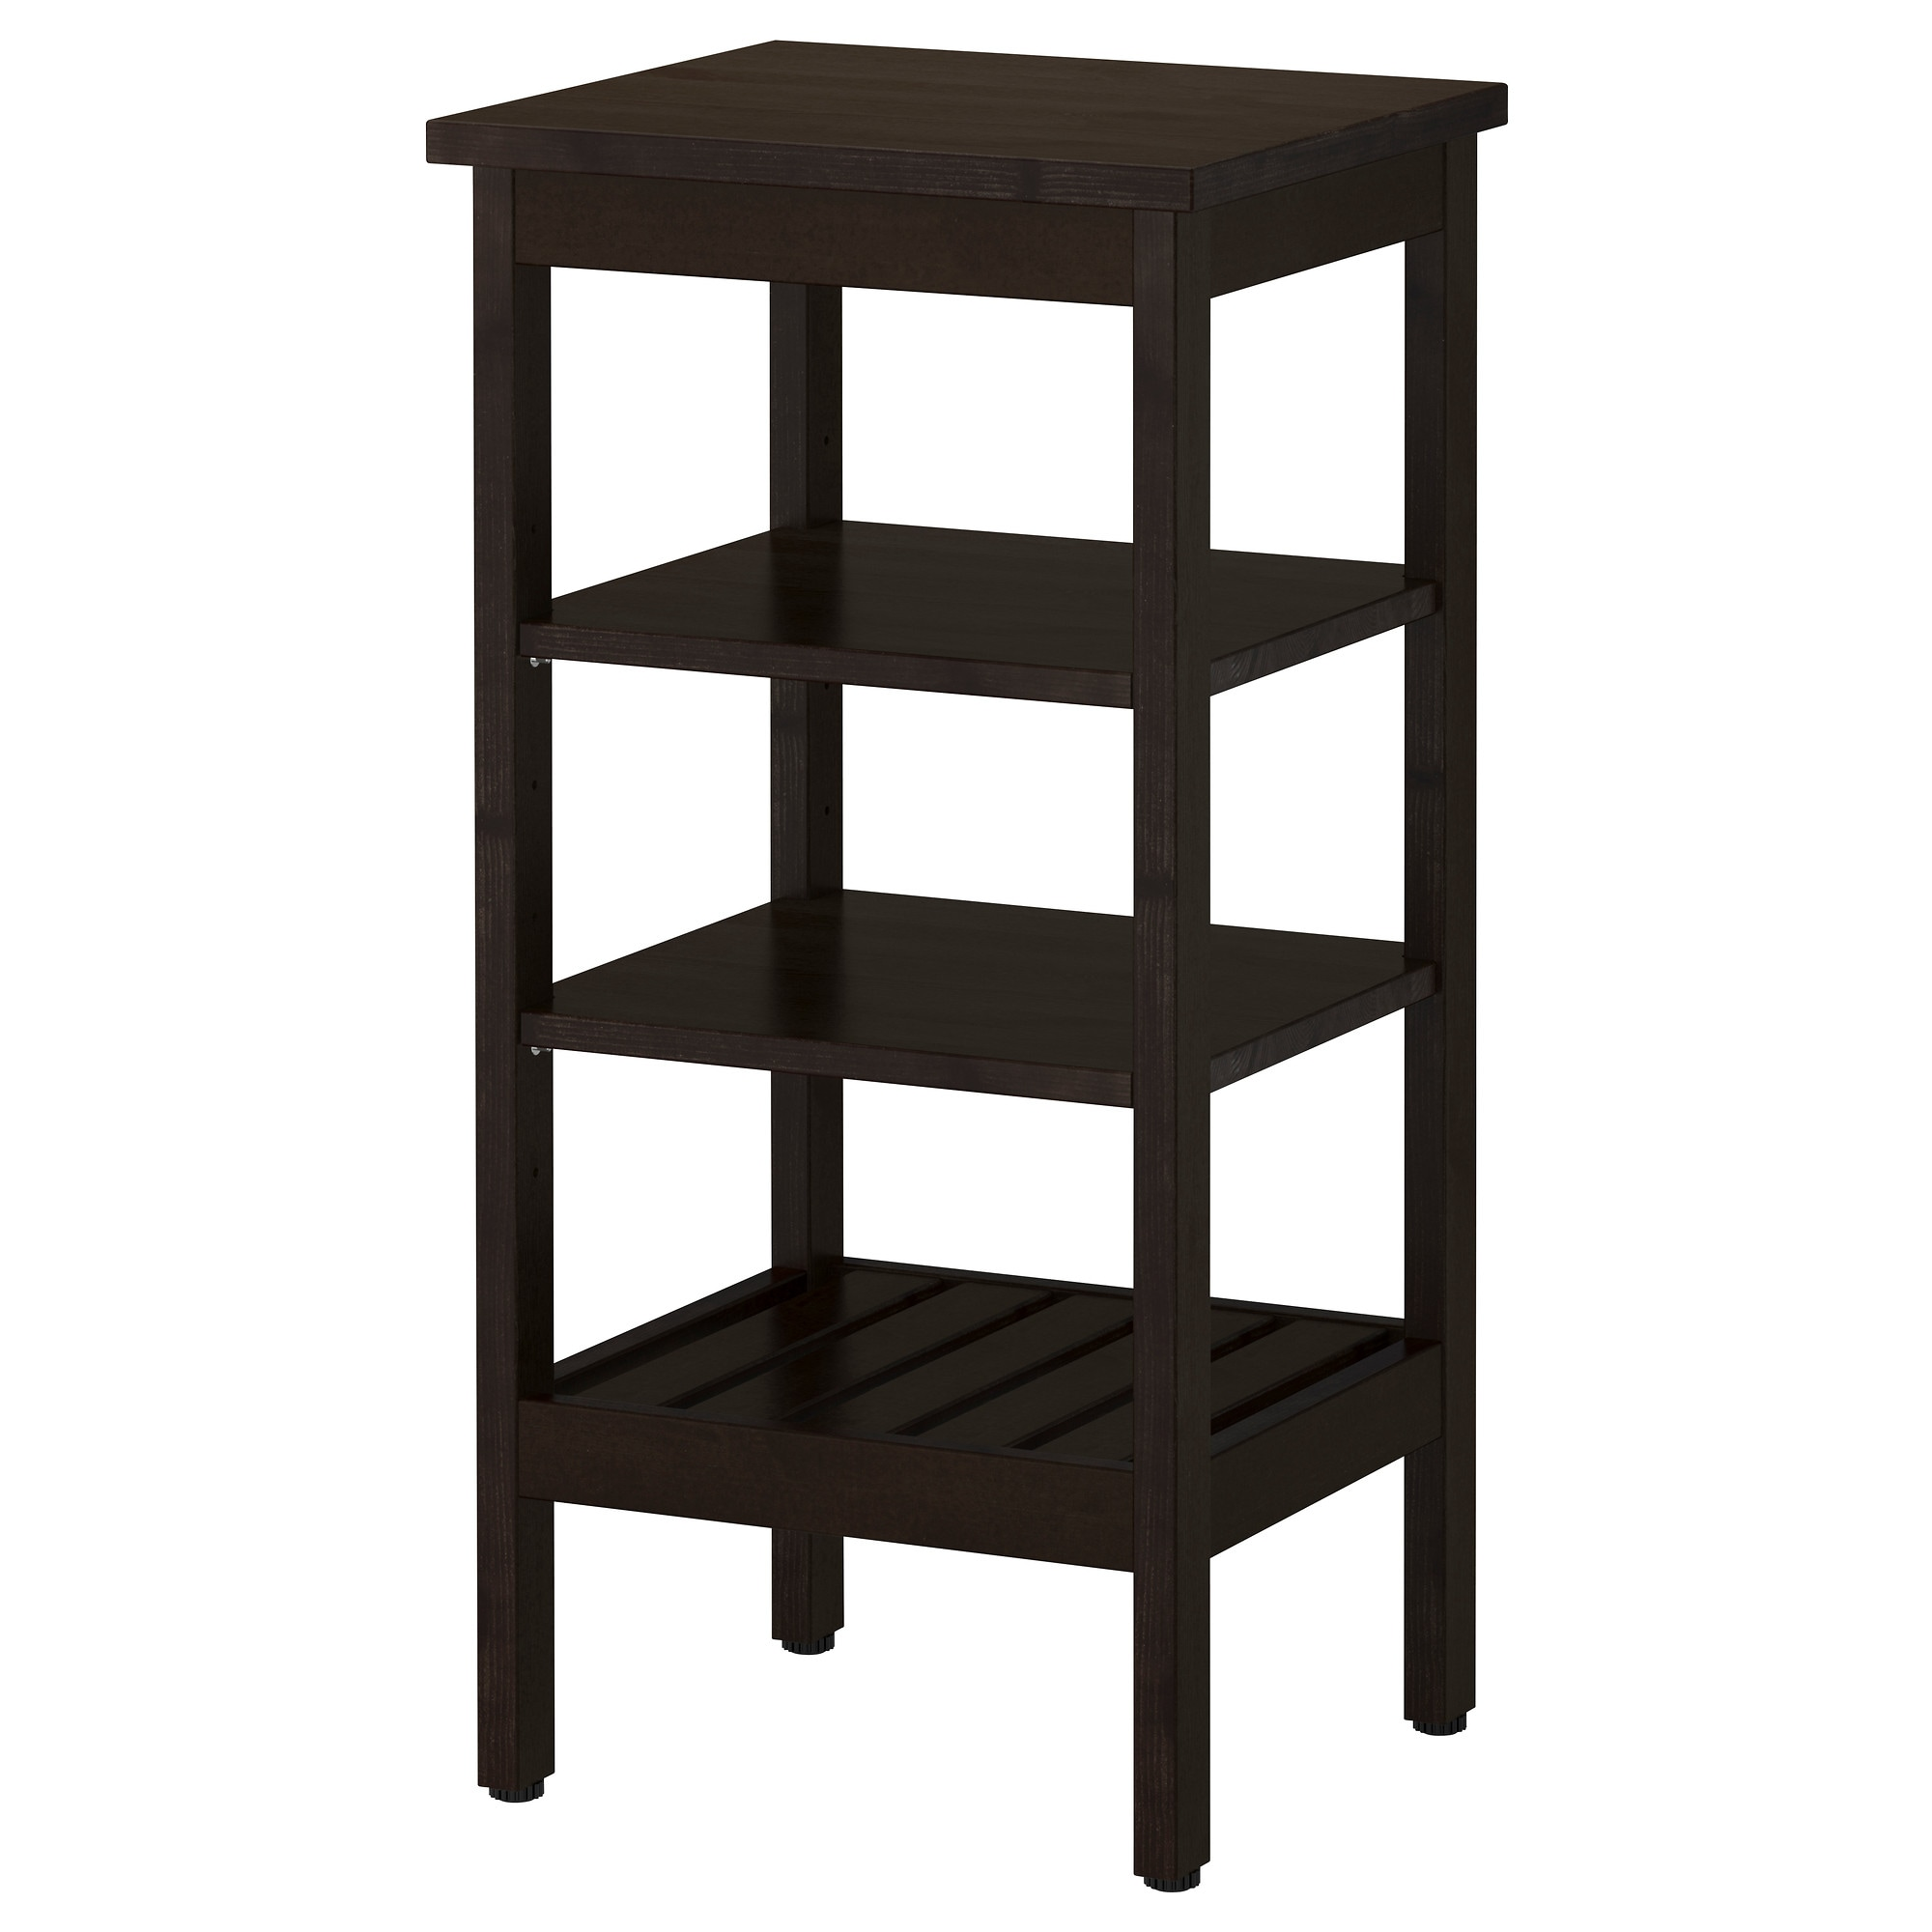 Shelving units for bathrooms - Shelving Units For Bathrooms 15